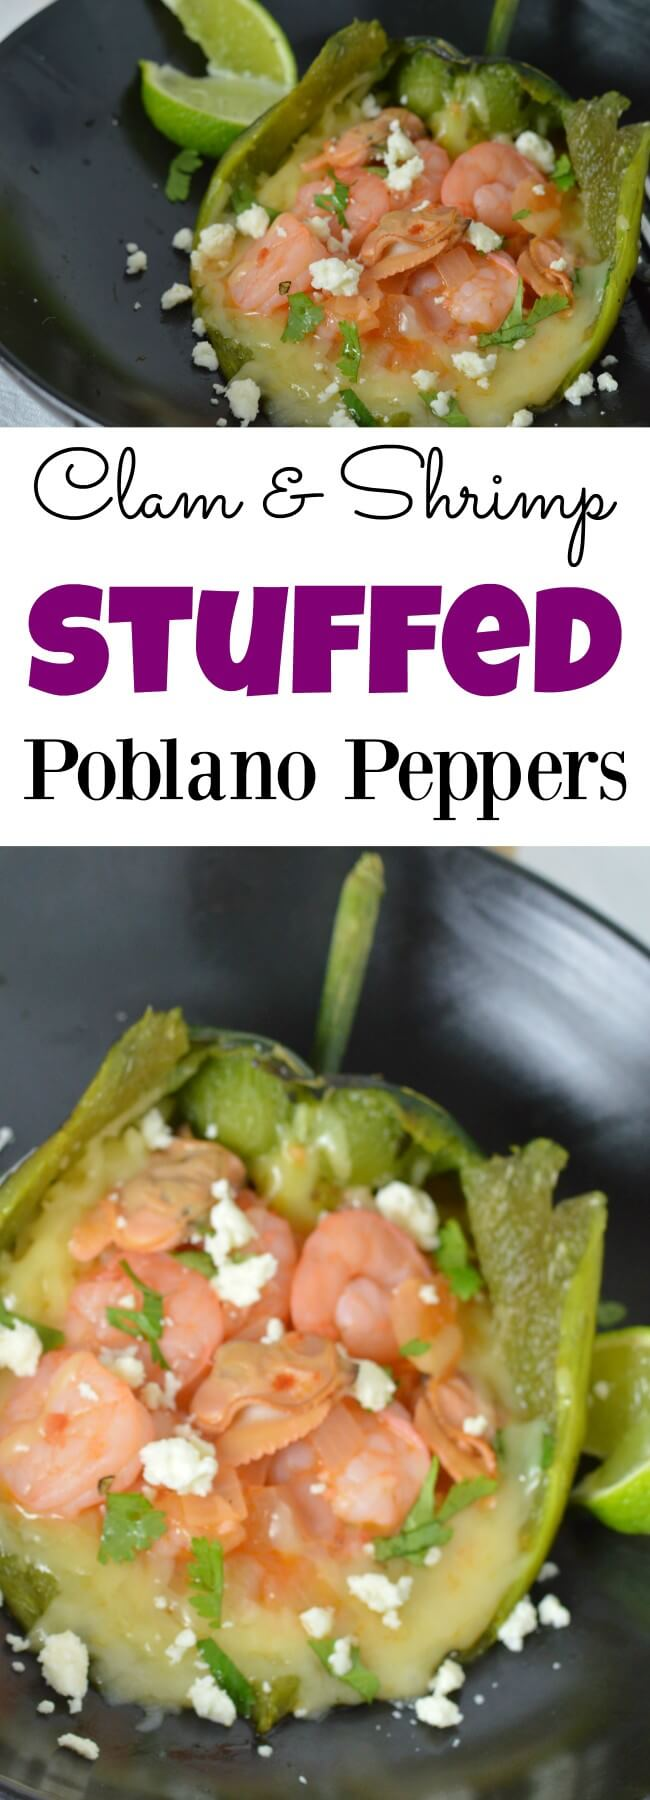 Melt in your mouth cheesy Mexican flavors with this easy recipe for Clam and Shrimp Stuffed Poblano Peppers